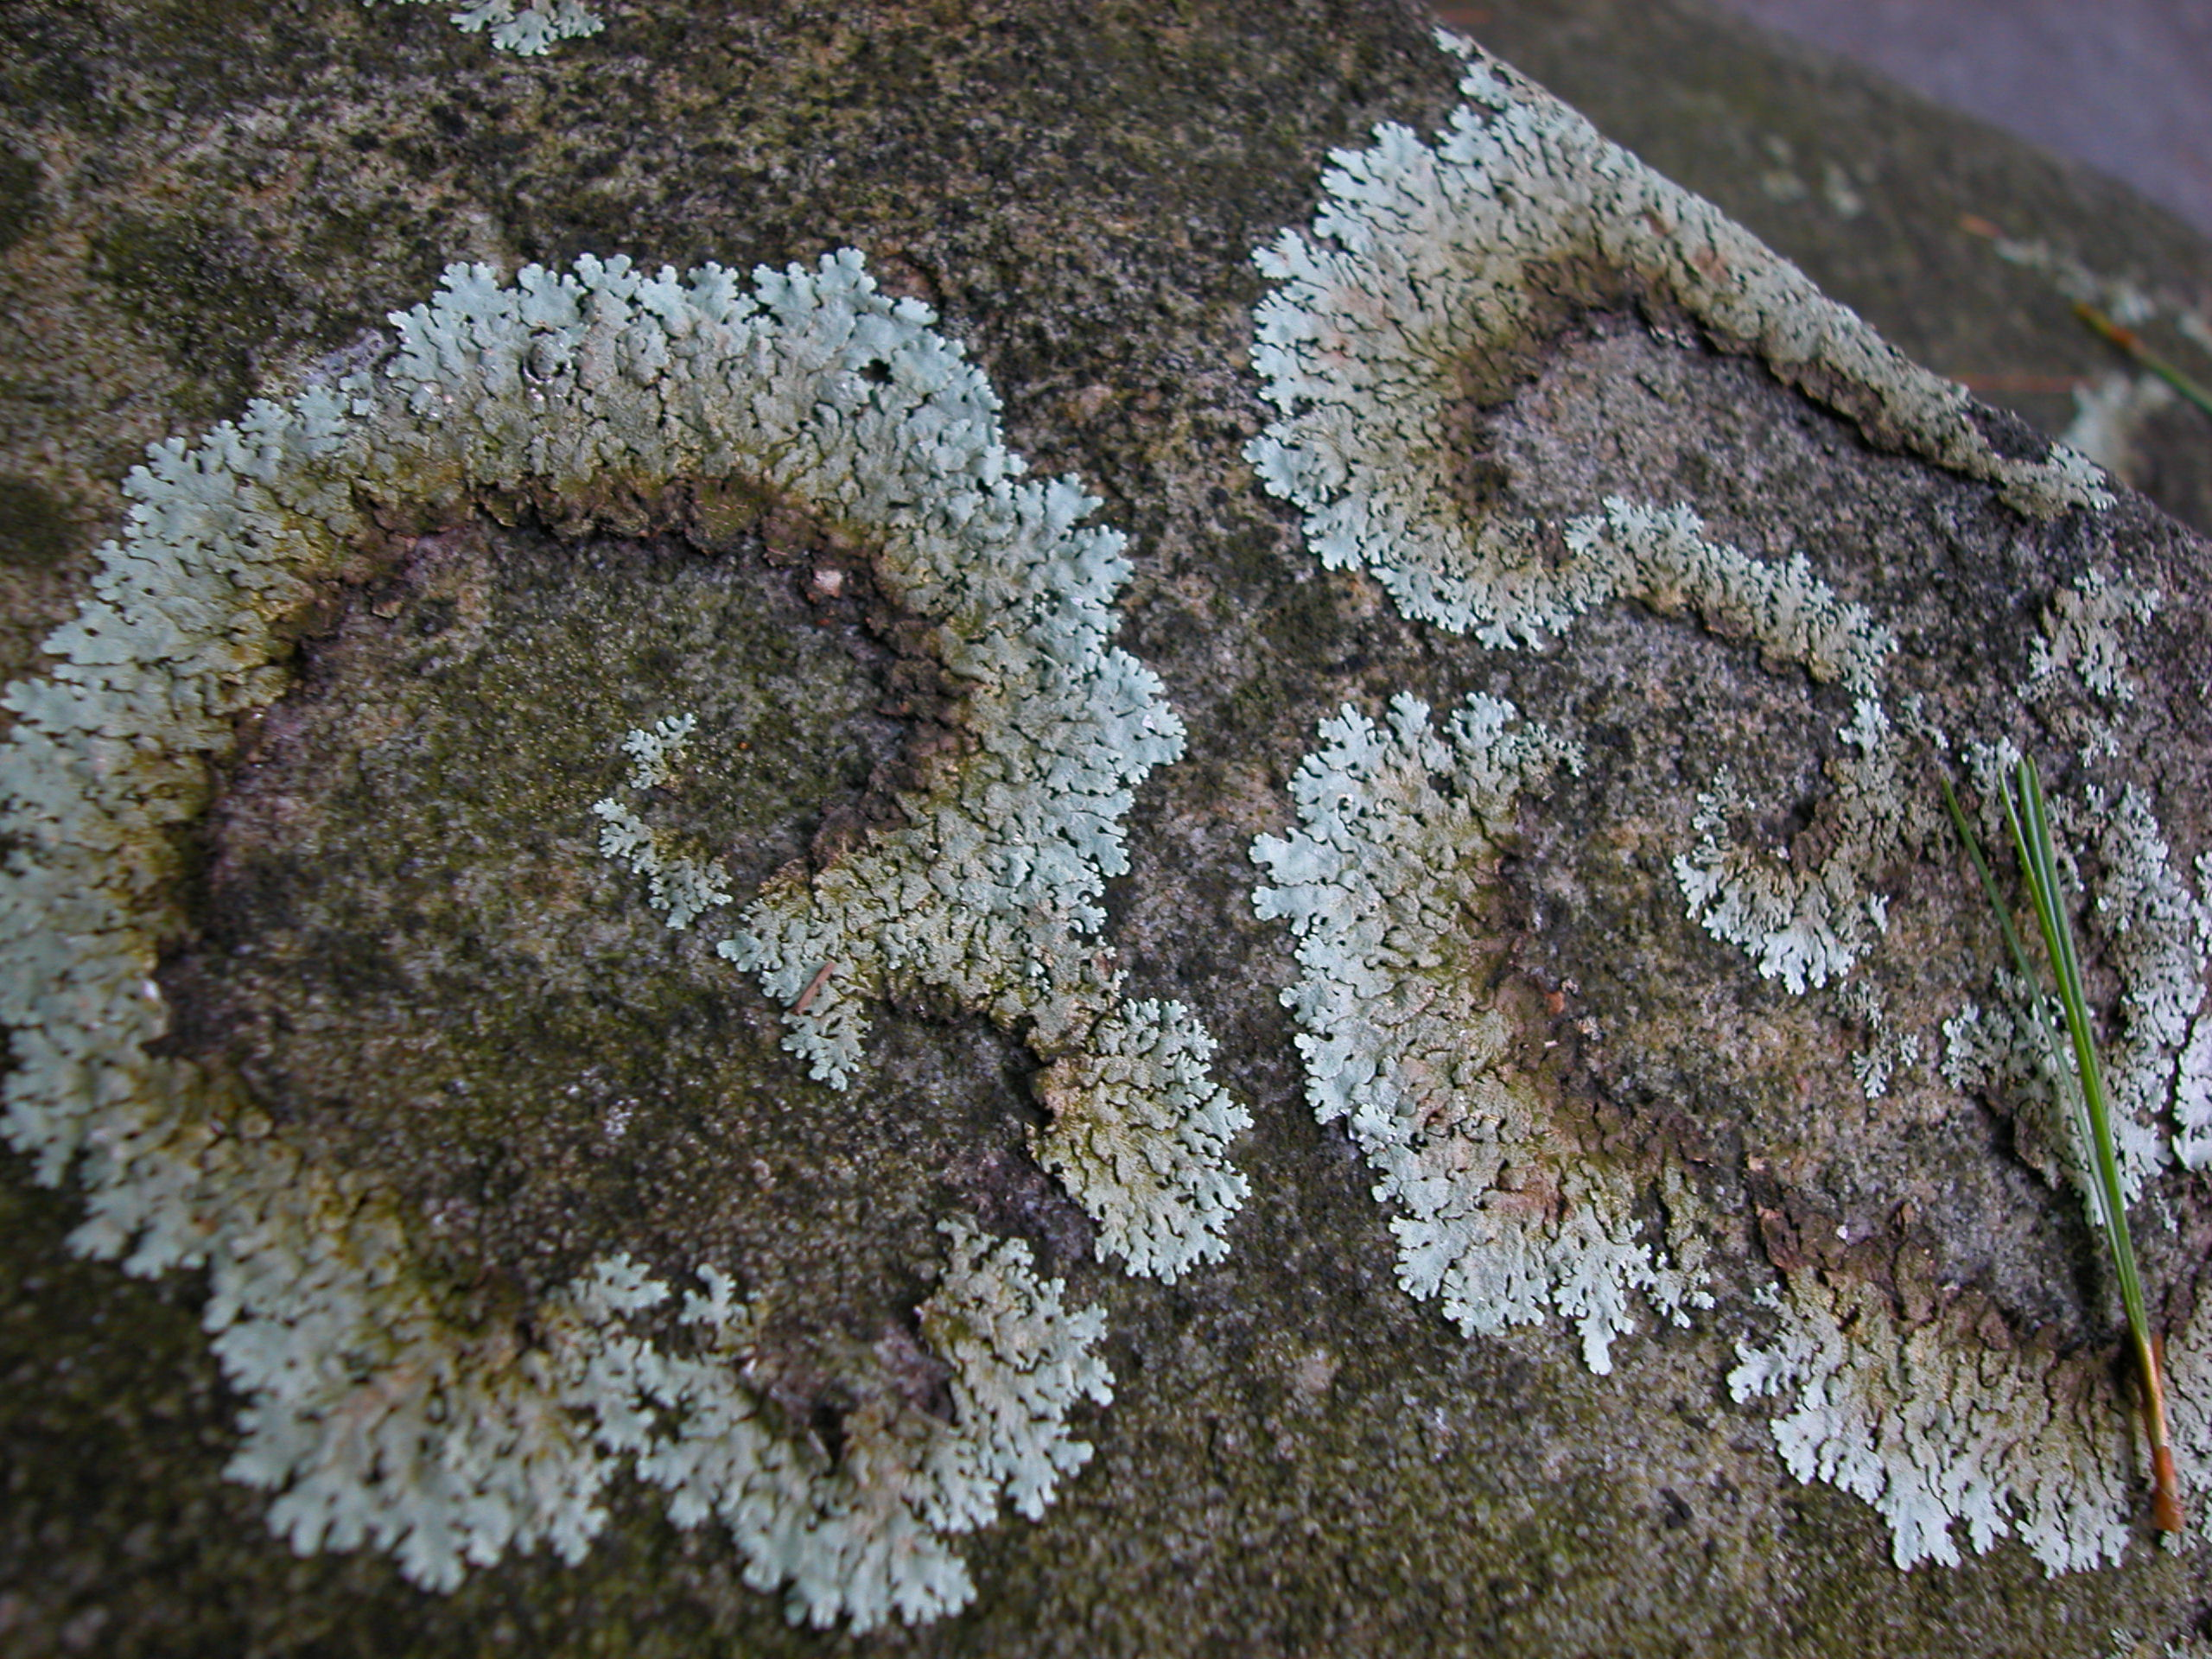 File:Plants flowers ice rocks lichens 230.jpg - Wikipedia